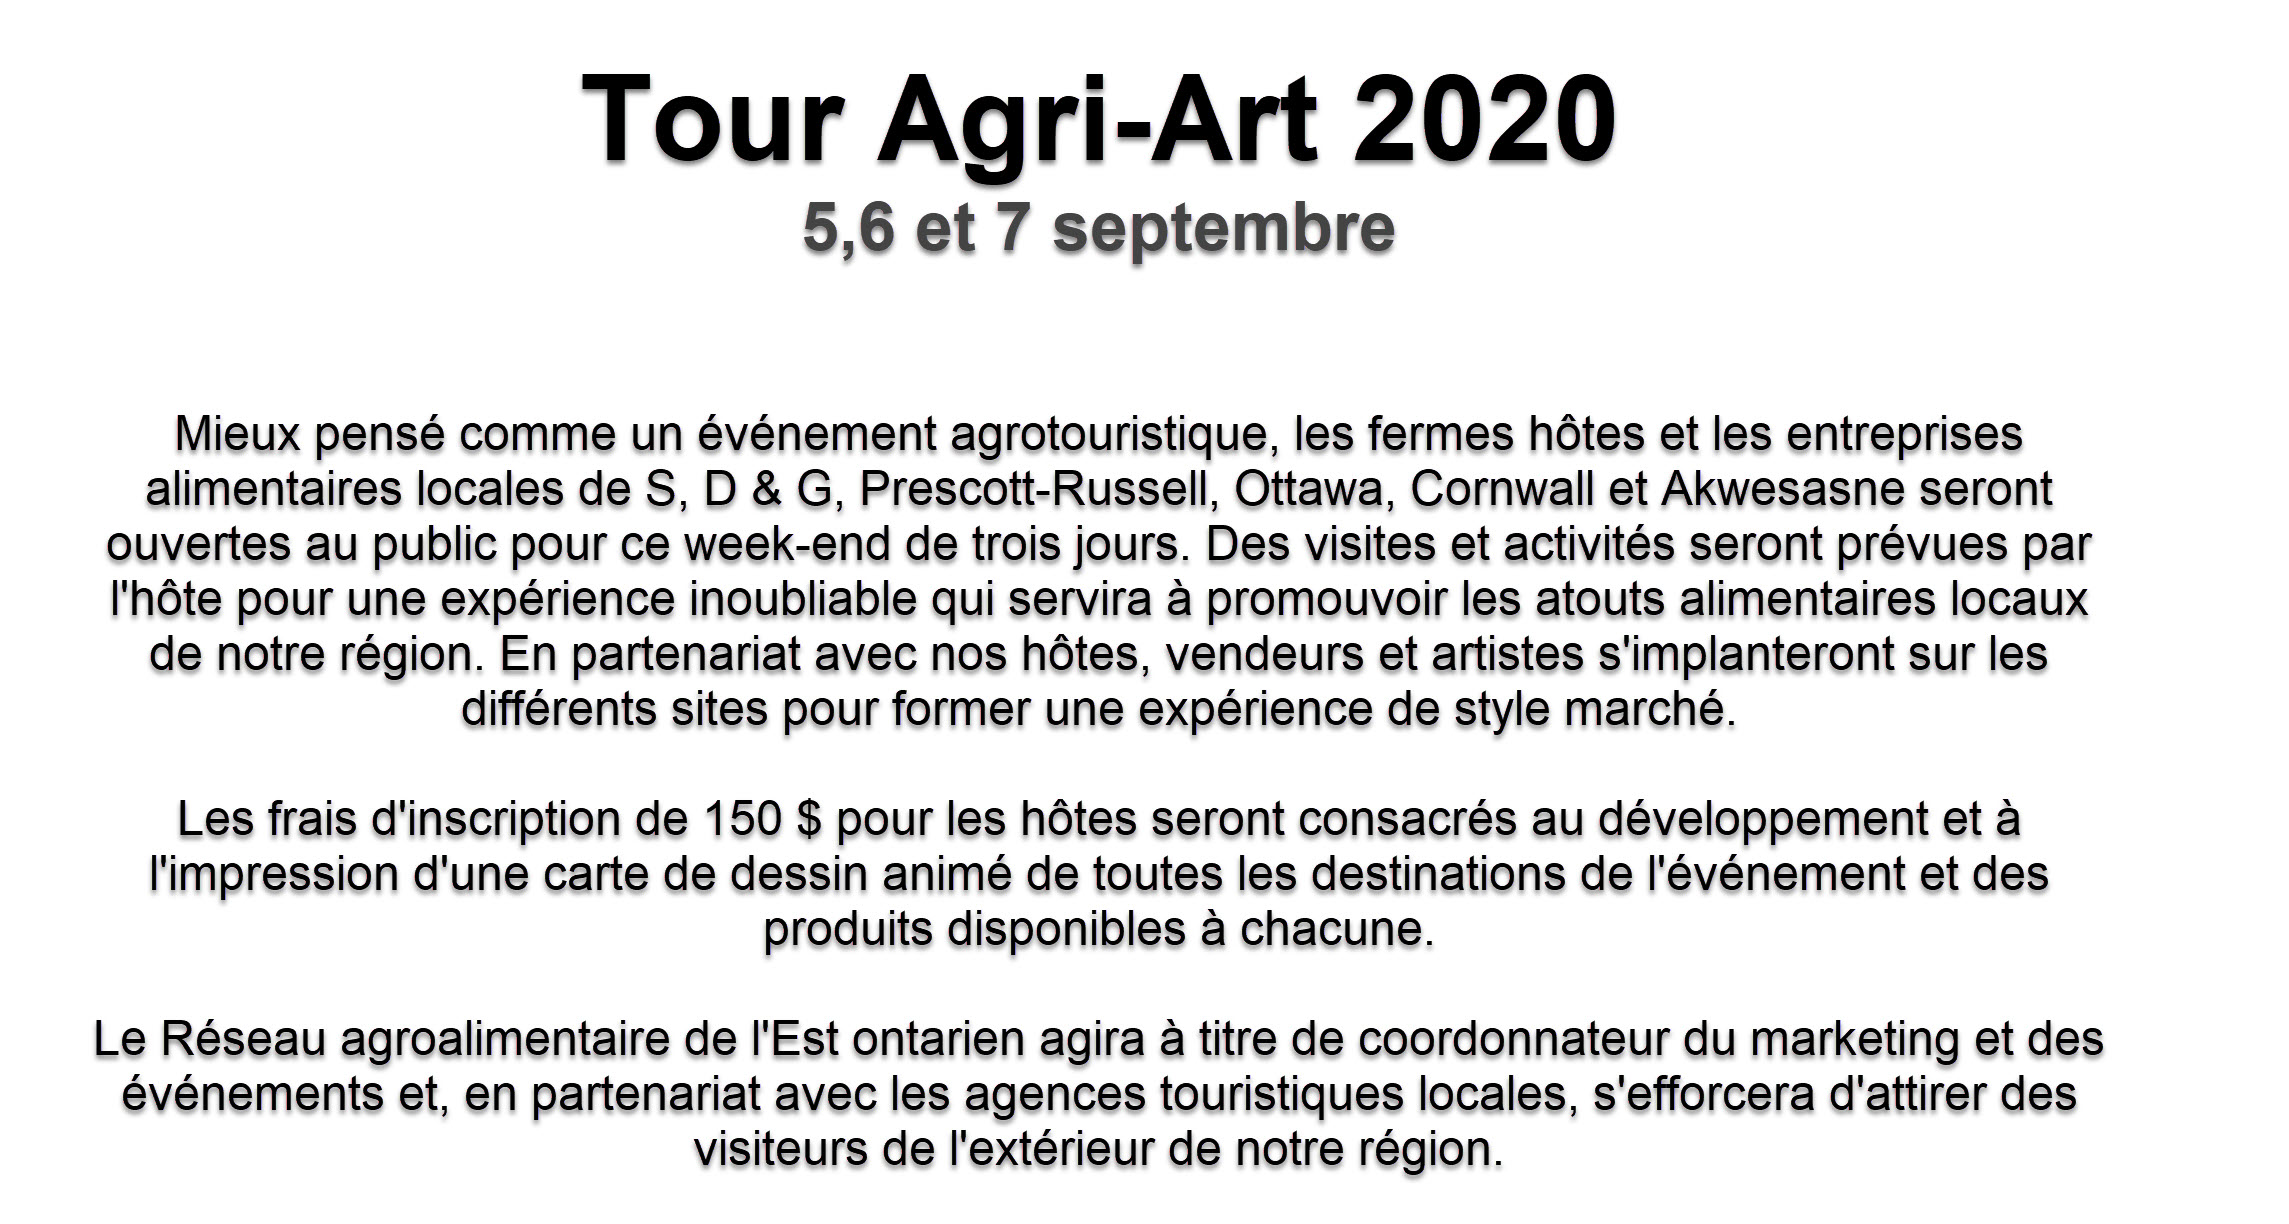 2020 Agri-Art tour Best thought of as an agrotourism event, host farms and local food businesses from across S,D&G, Prescott-Russell, Ottawa, Cornwall and Akwesasne will be open to the public for this three day weekend. Tours and activities will be planned by the host for an unforgettable experience that will serve to promote our regions local food assets. In partnership with our hosts, vendors and artists will establish themselves at the various sites as well. The $150 registration fee for hosts will be dedicated to the printing of a cartoon map of all event destinations and available products at each. The Eastern Ontario Agri-Food Network will act as marketing/event coordinator and in partnership with local tourism agencies, will work to attract visitors from outside of our region.